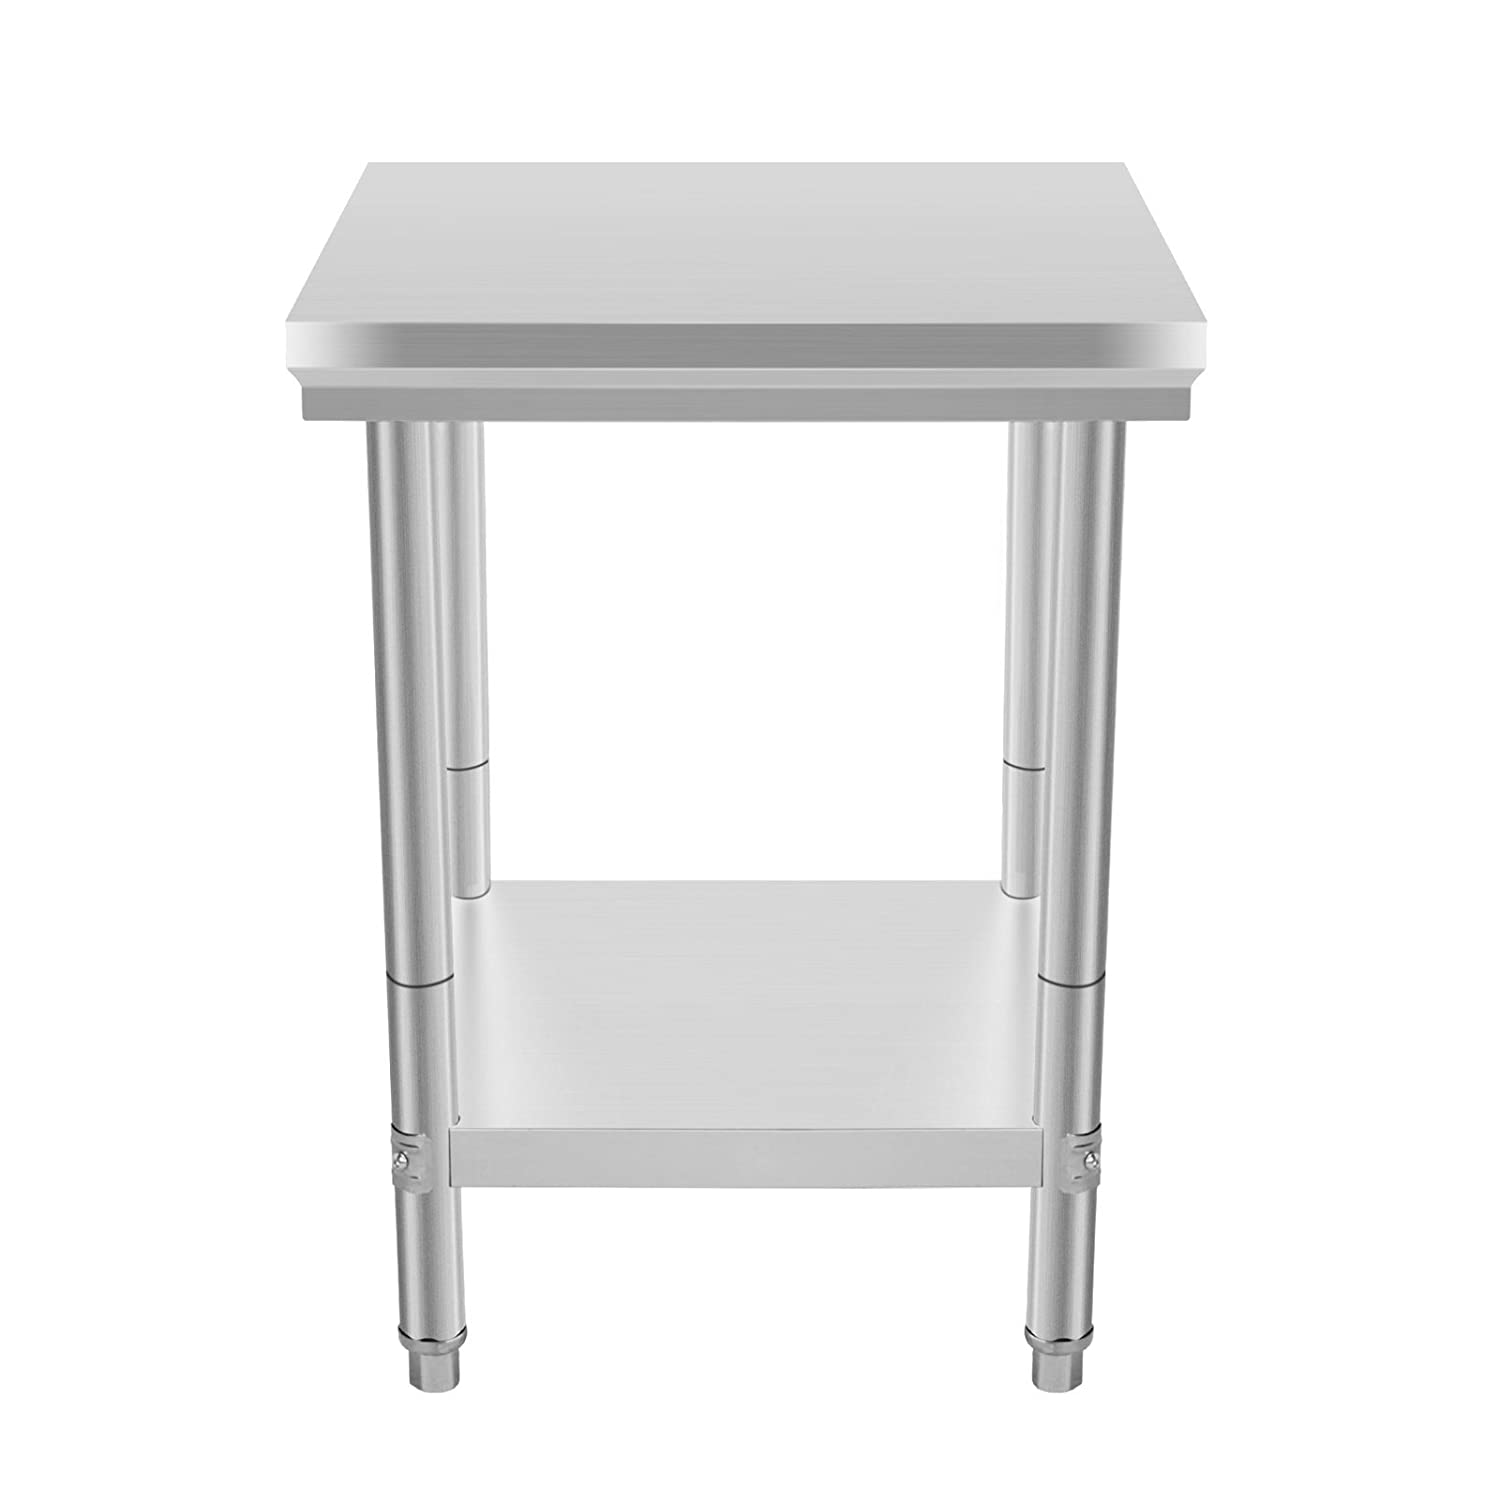 Amazon VEVOR NSF Stainless Steel Work Table 24 x 24 Inches